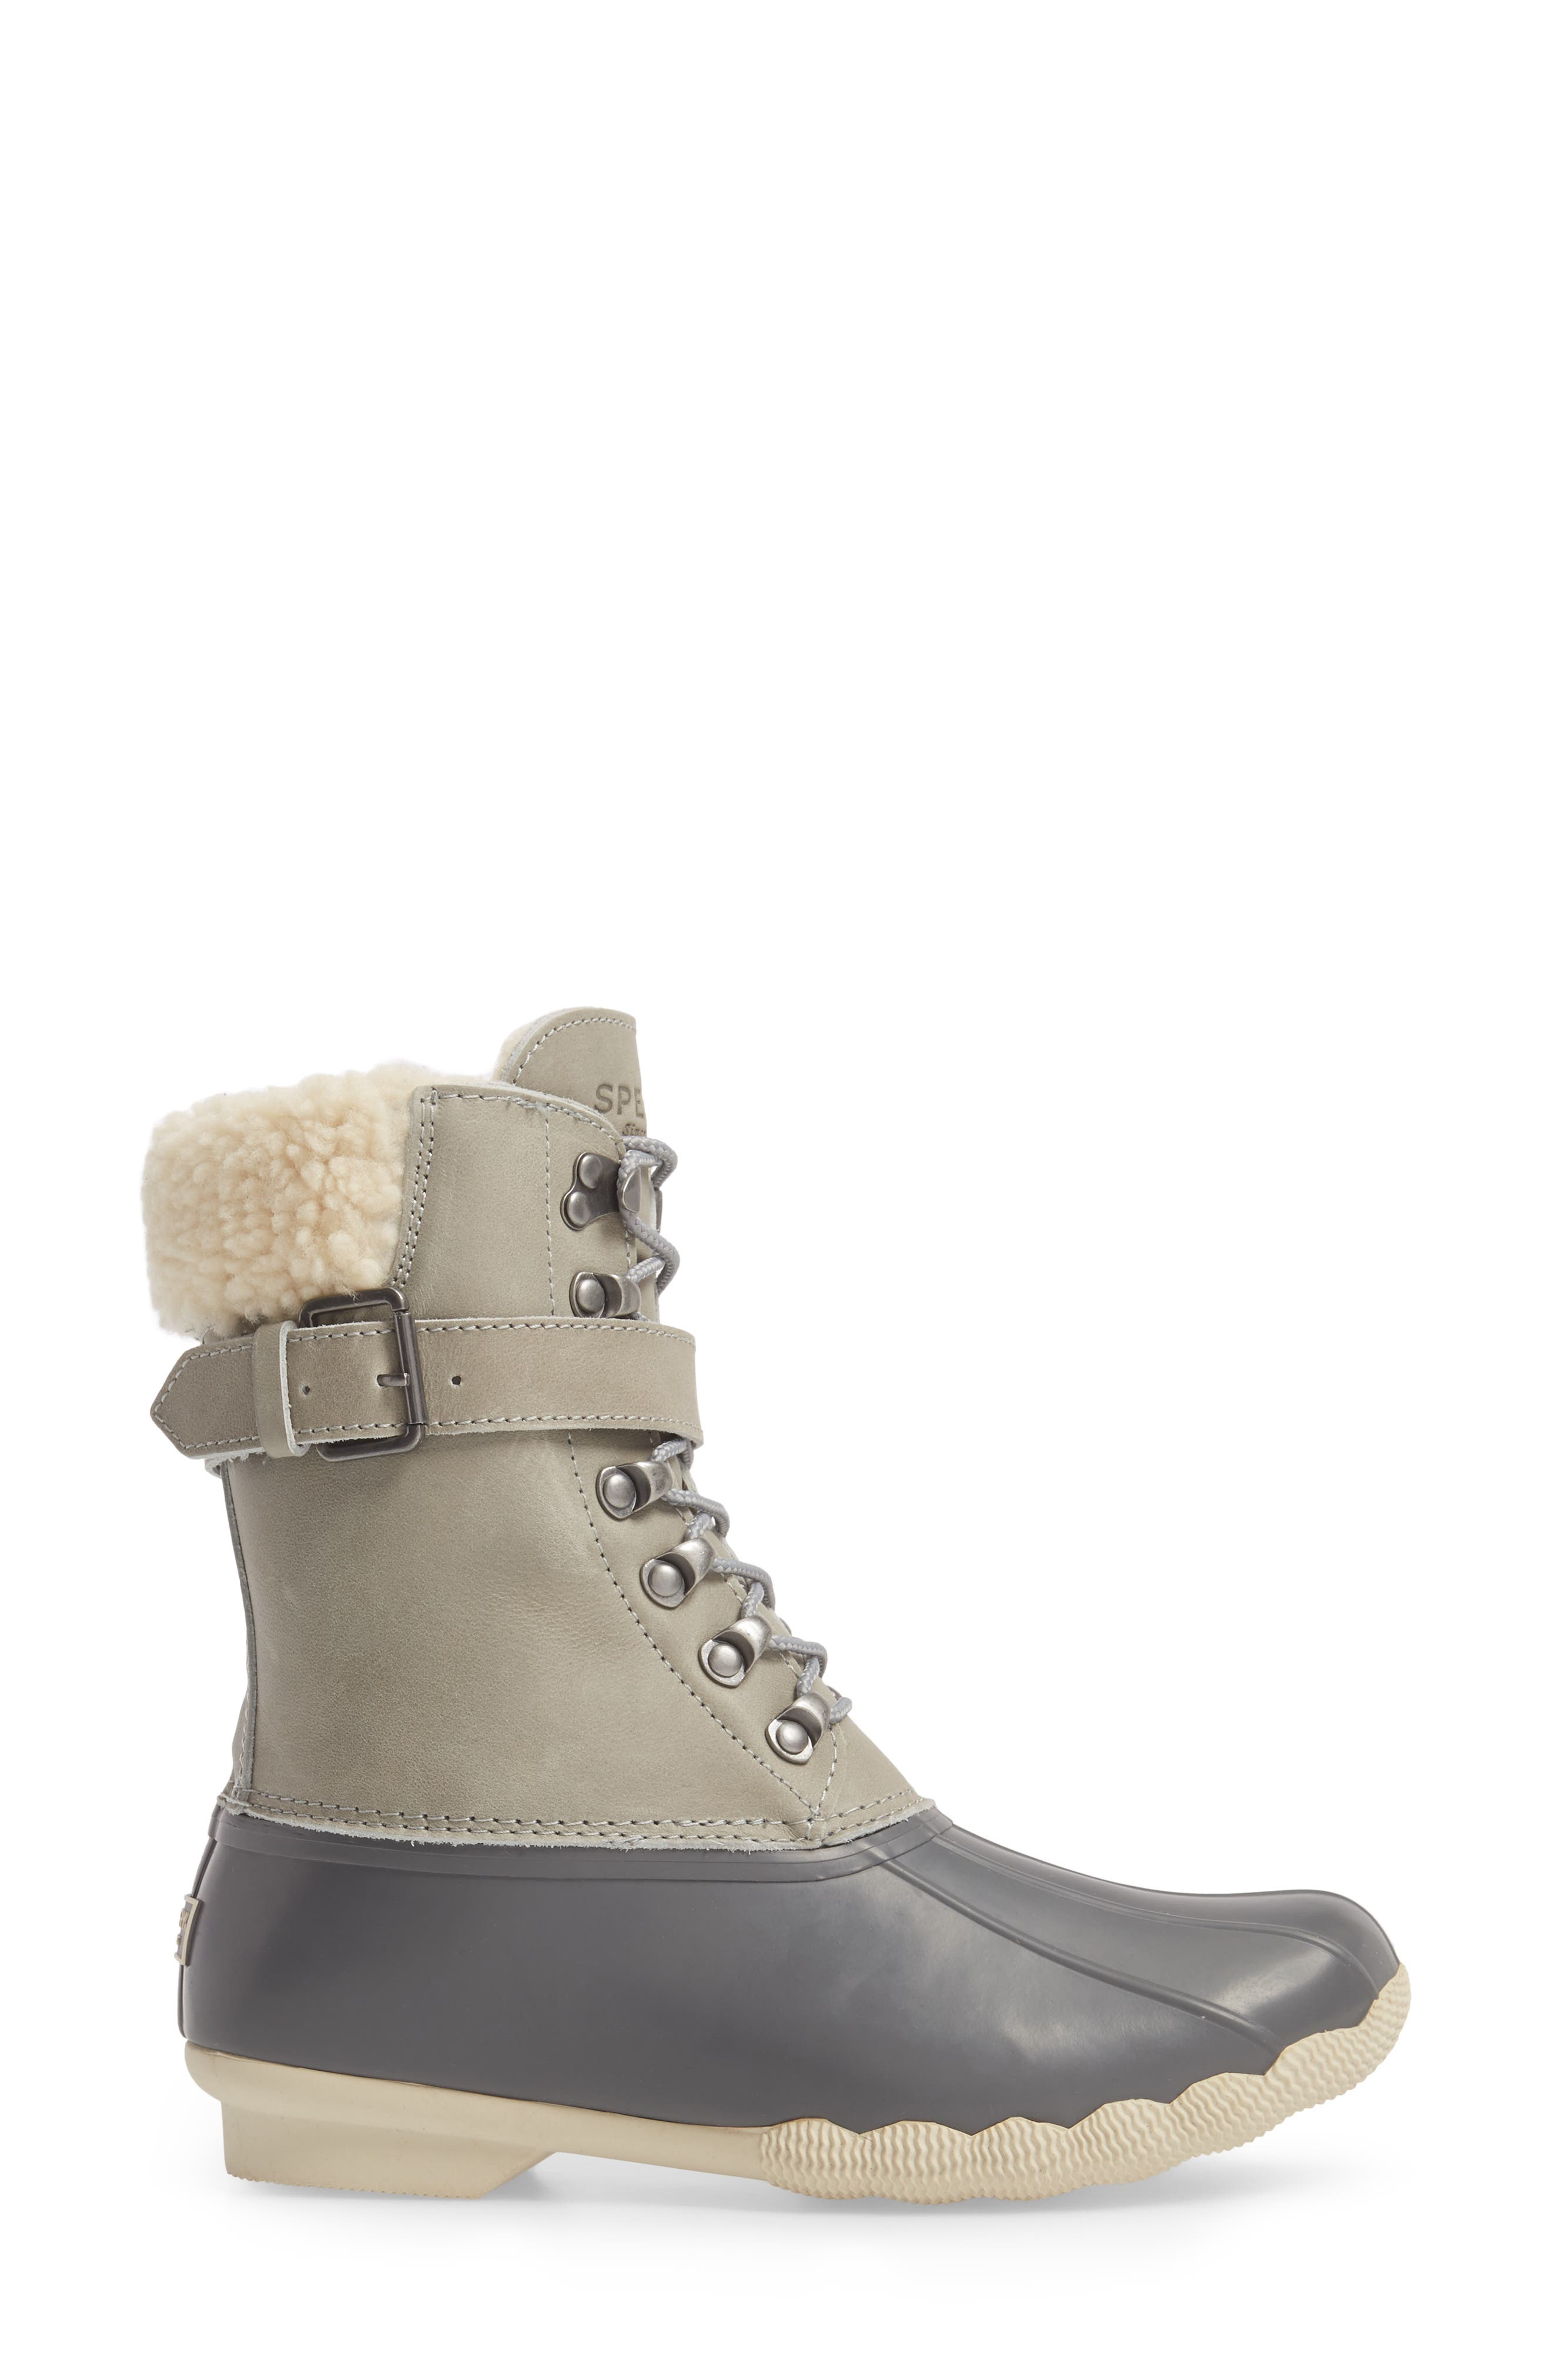 Shearwater Water-Resistant Genuine Shearling Lined Boot,                             Alternate thumbnail 11, color,